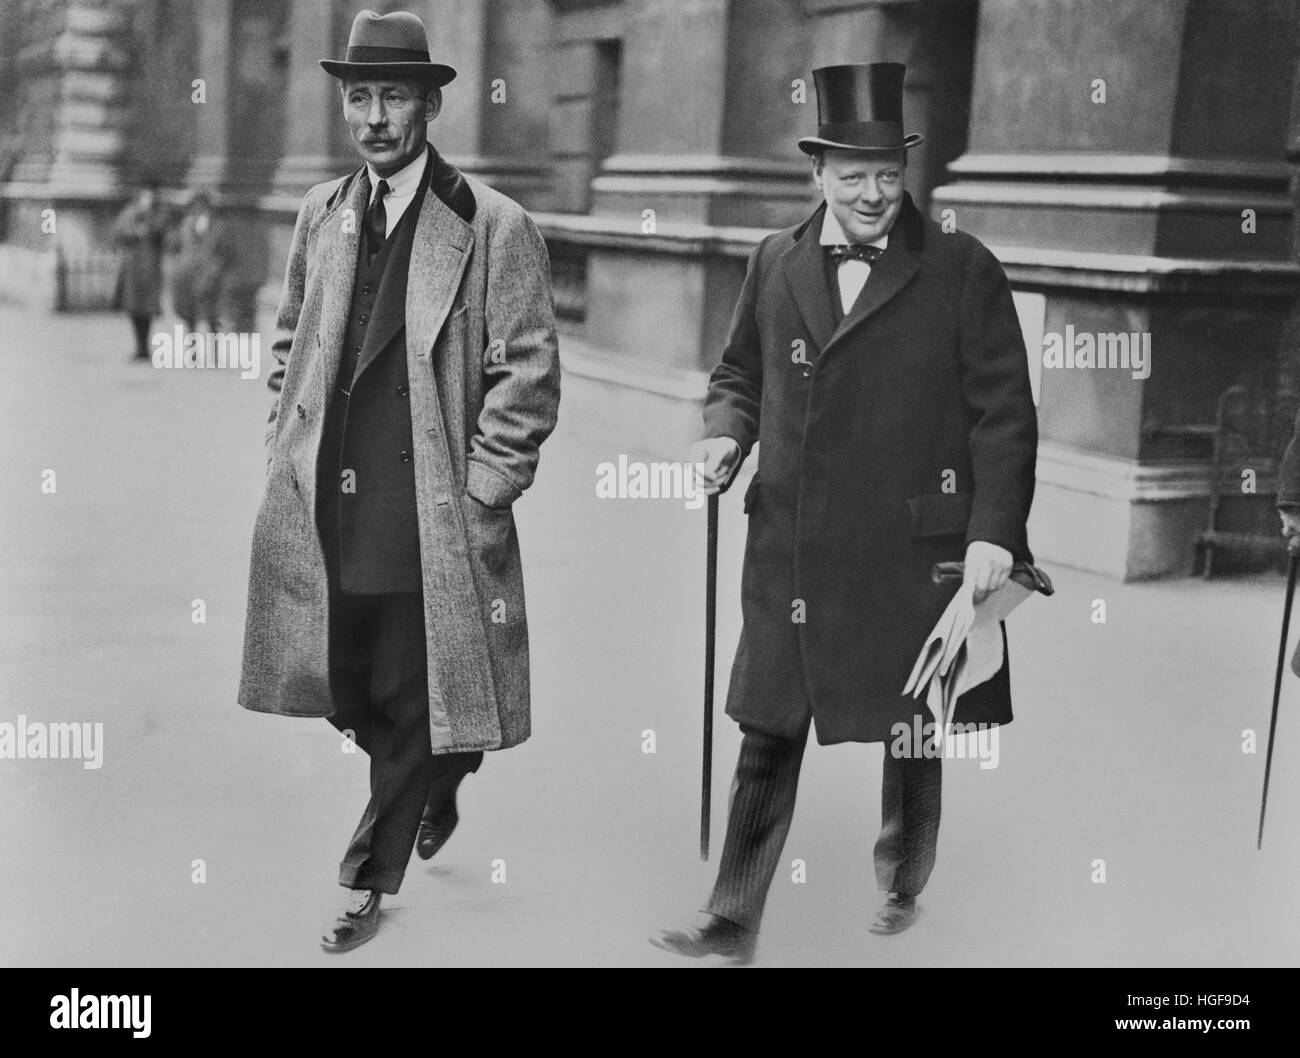 Winston Churchill as Chancellor of the Exchequer. 1924 - Stock Image